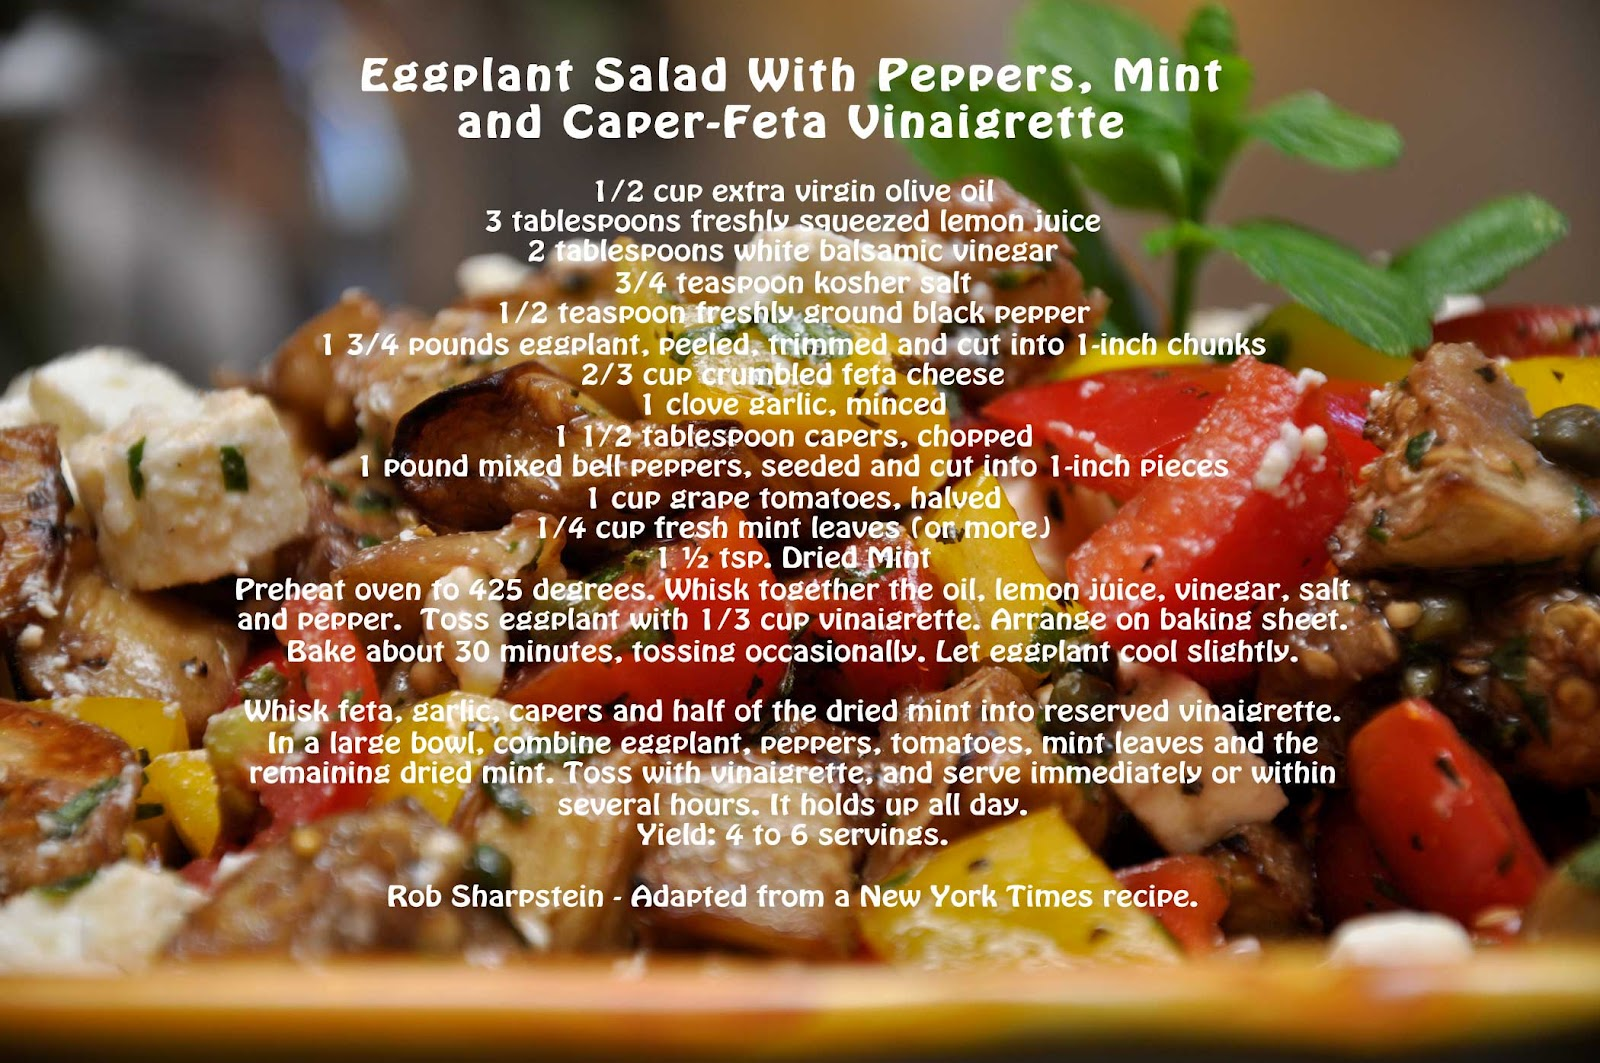 ... Healthy?: Eggplant Salad with Peppers, Mint and Caper-Feta Vinaigrette